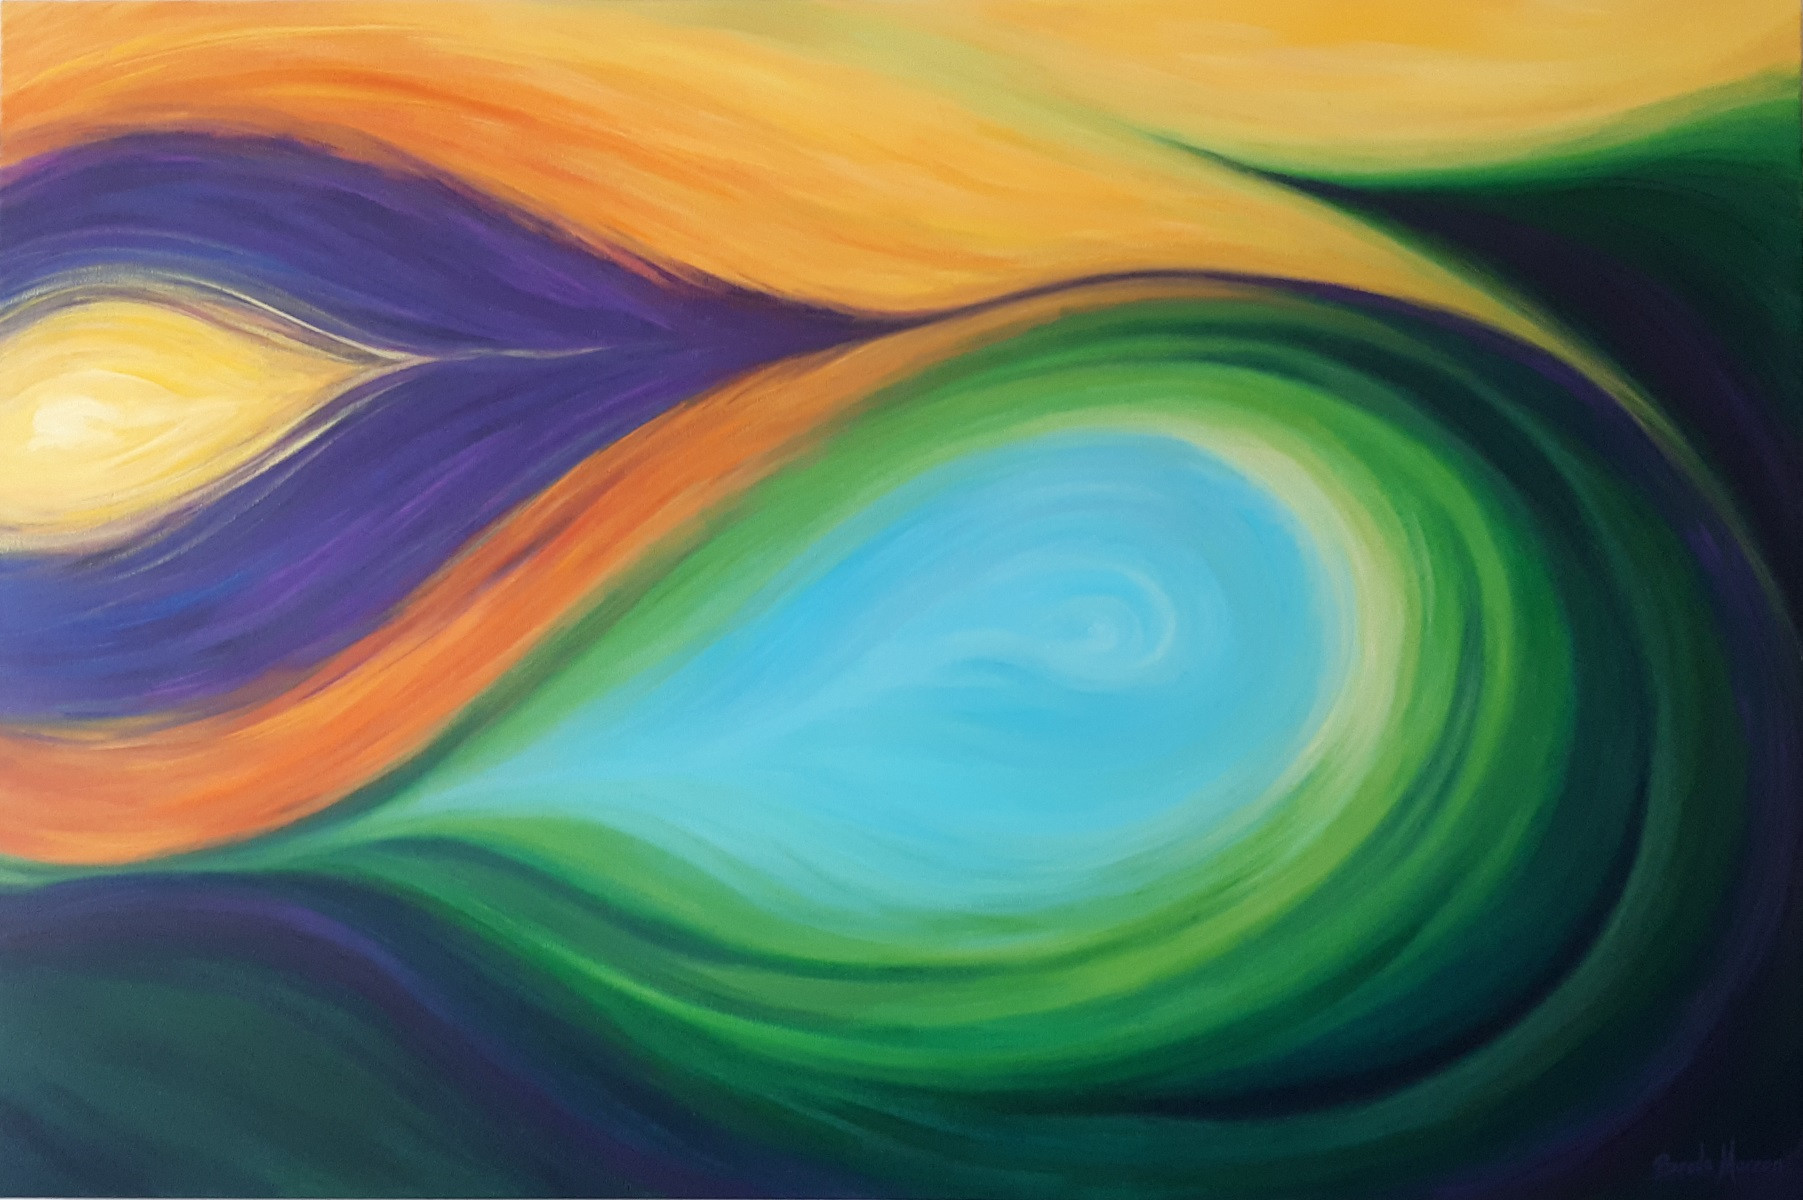 'Soul Song' acrylic on Linen canvas, 120cm x 80cm x 4cm